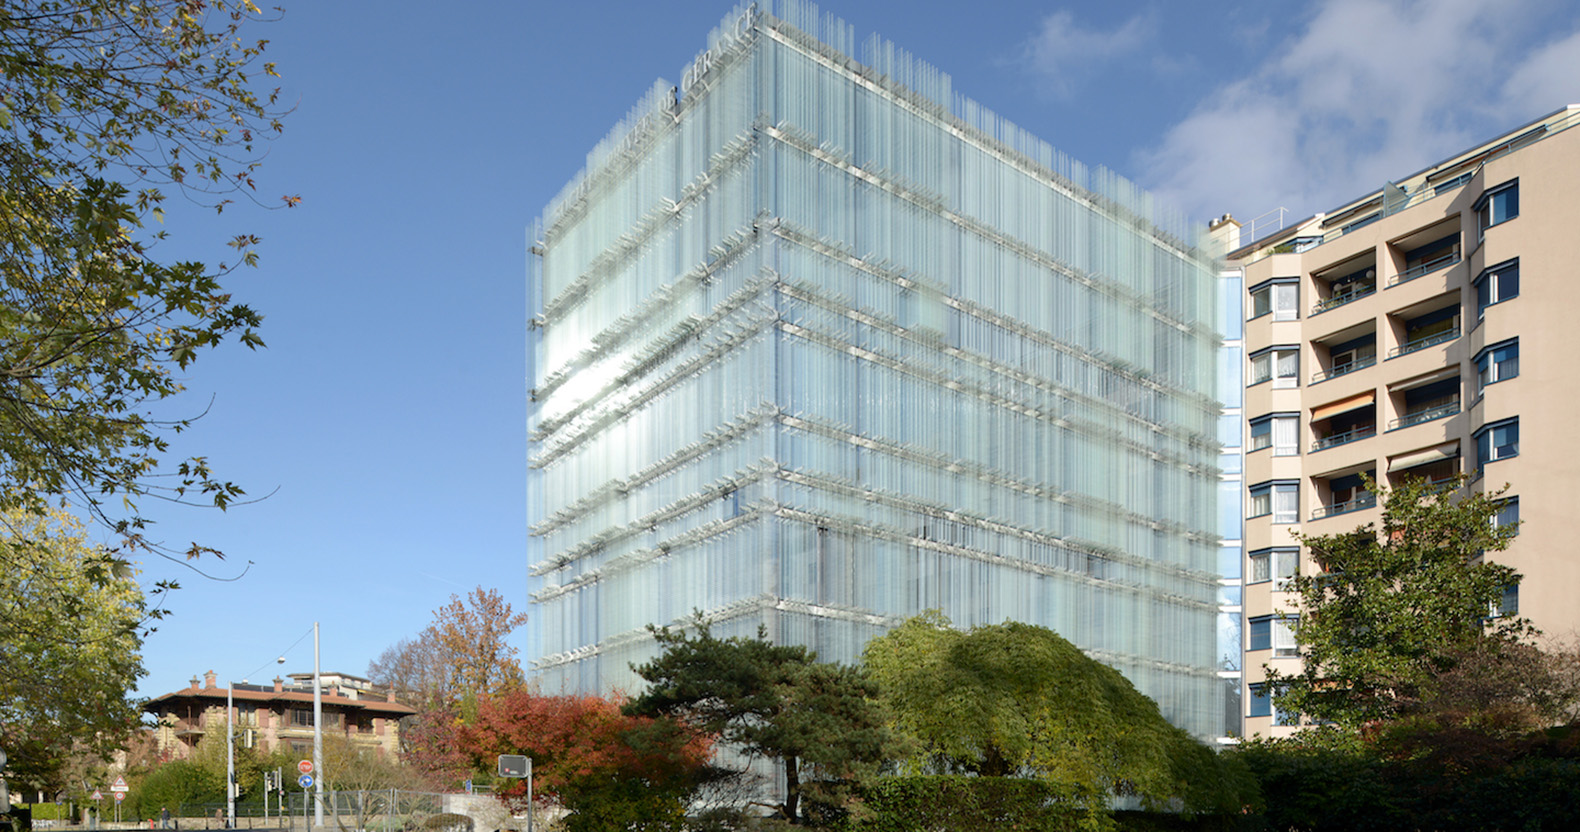 Naturally ventilated glass building looks like a for House bulder